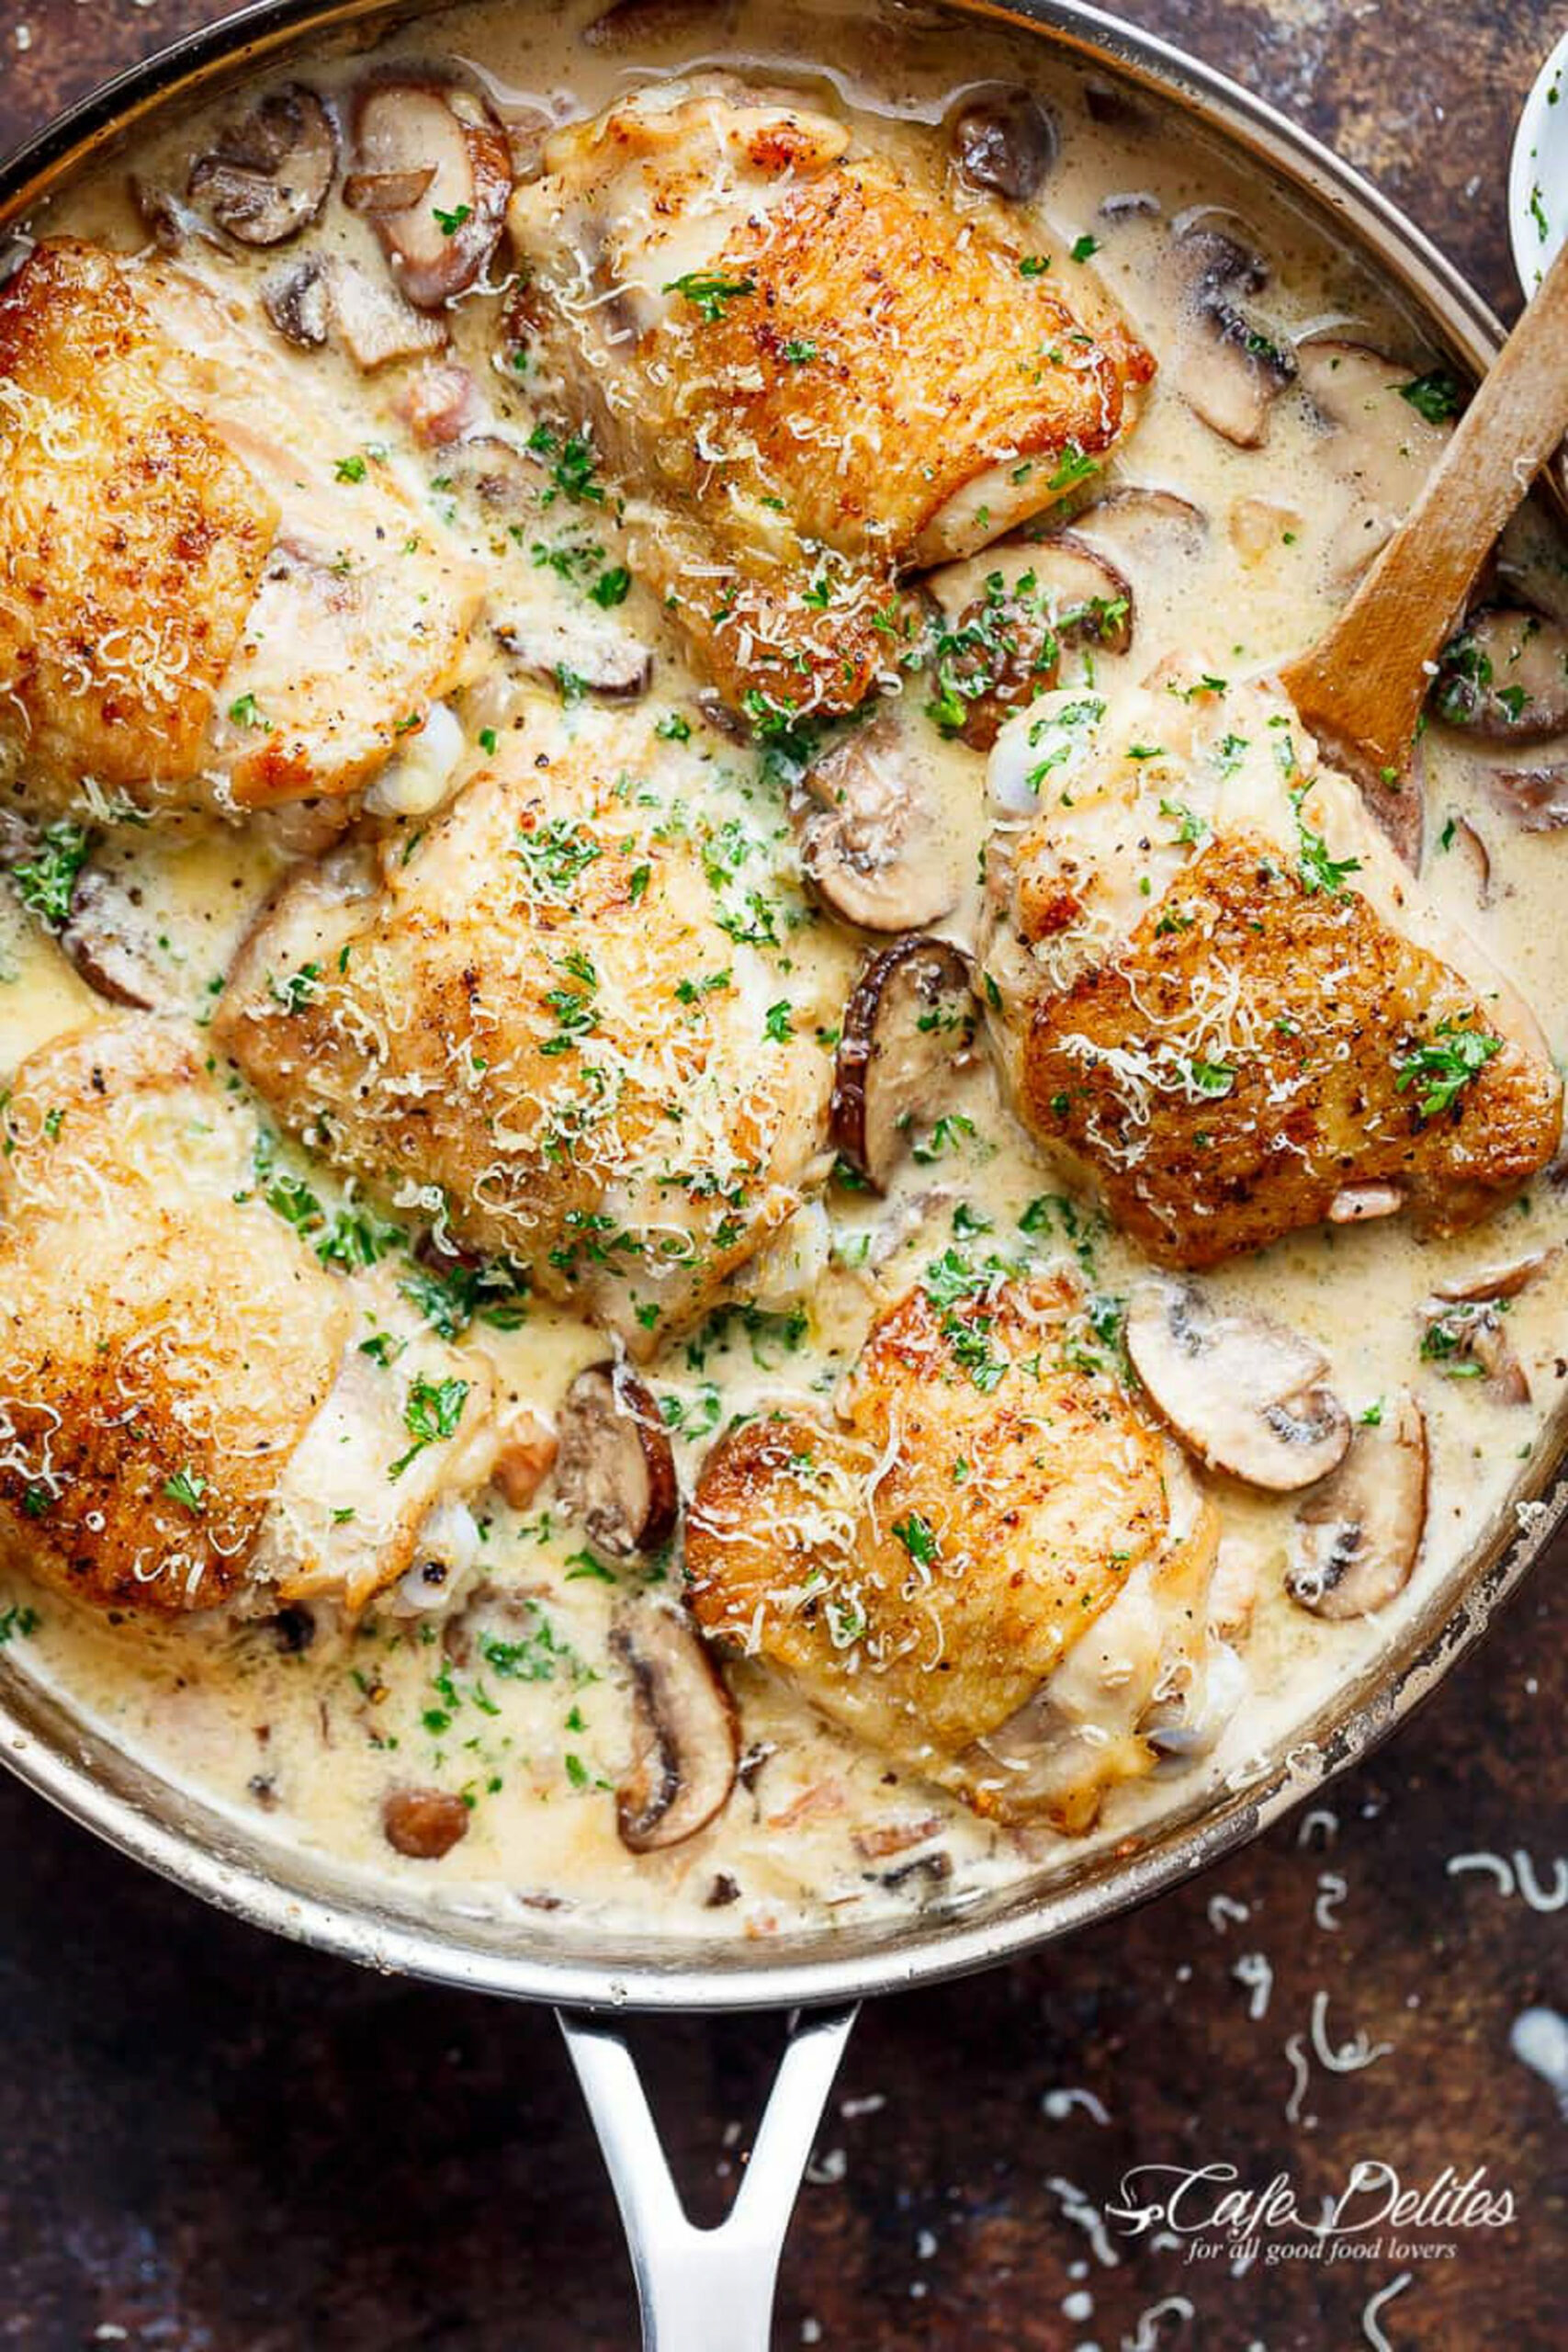 14 Delicious Dutch Oven Chicken Recipes - How to Make ..